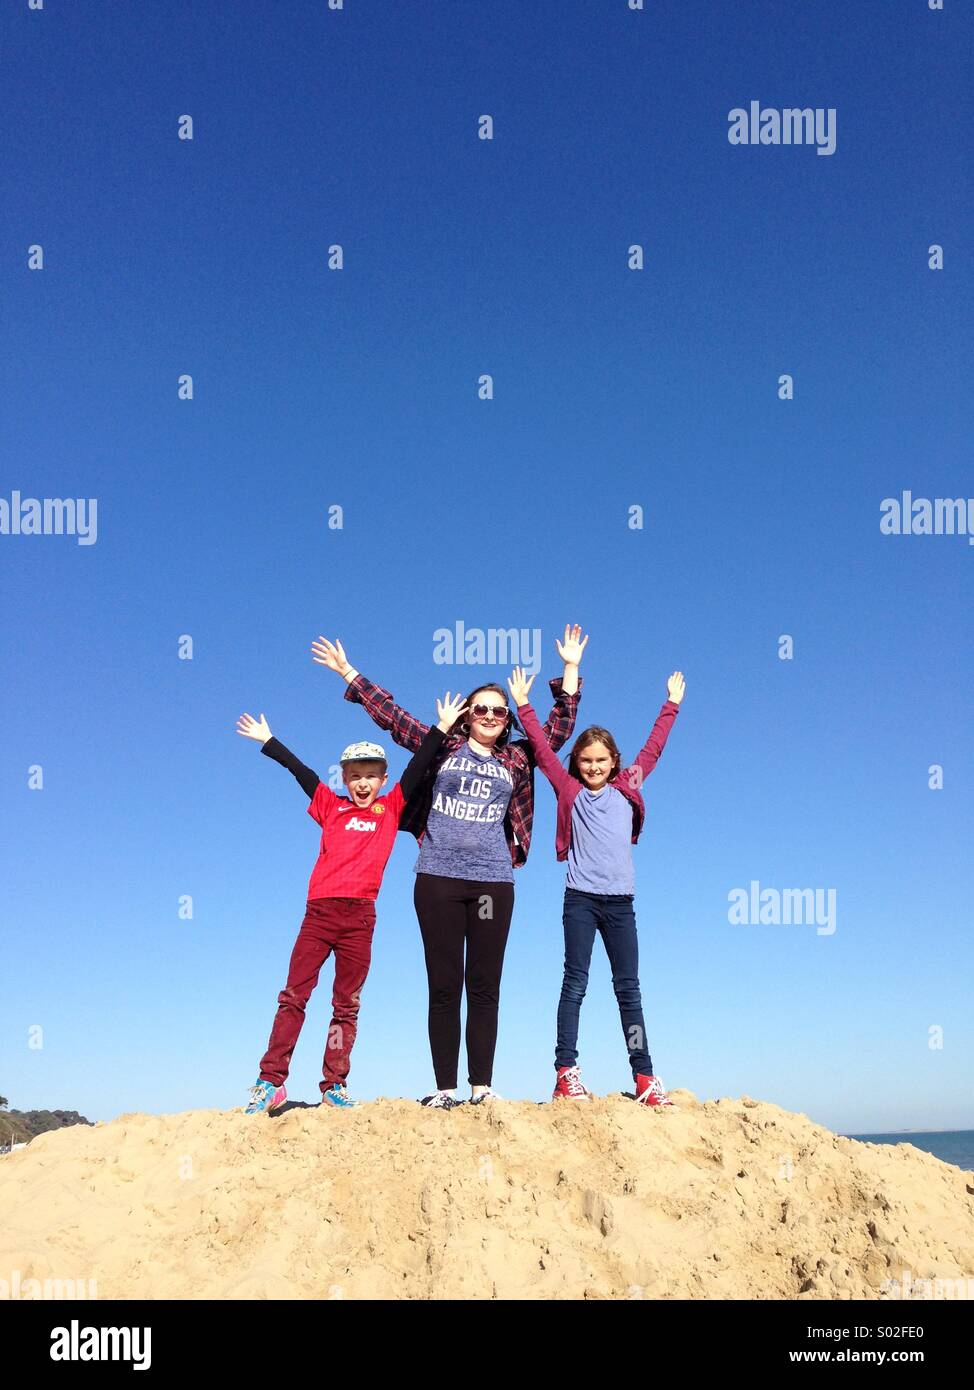 three kids on a sand dune with clear blue sky - Stock Image